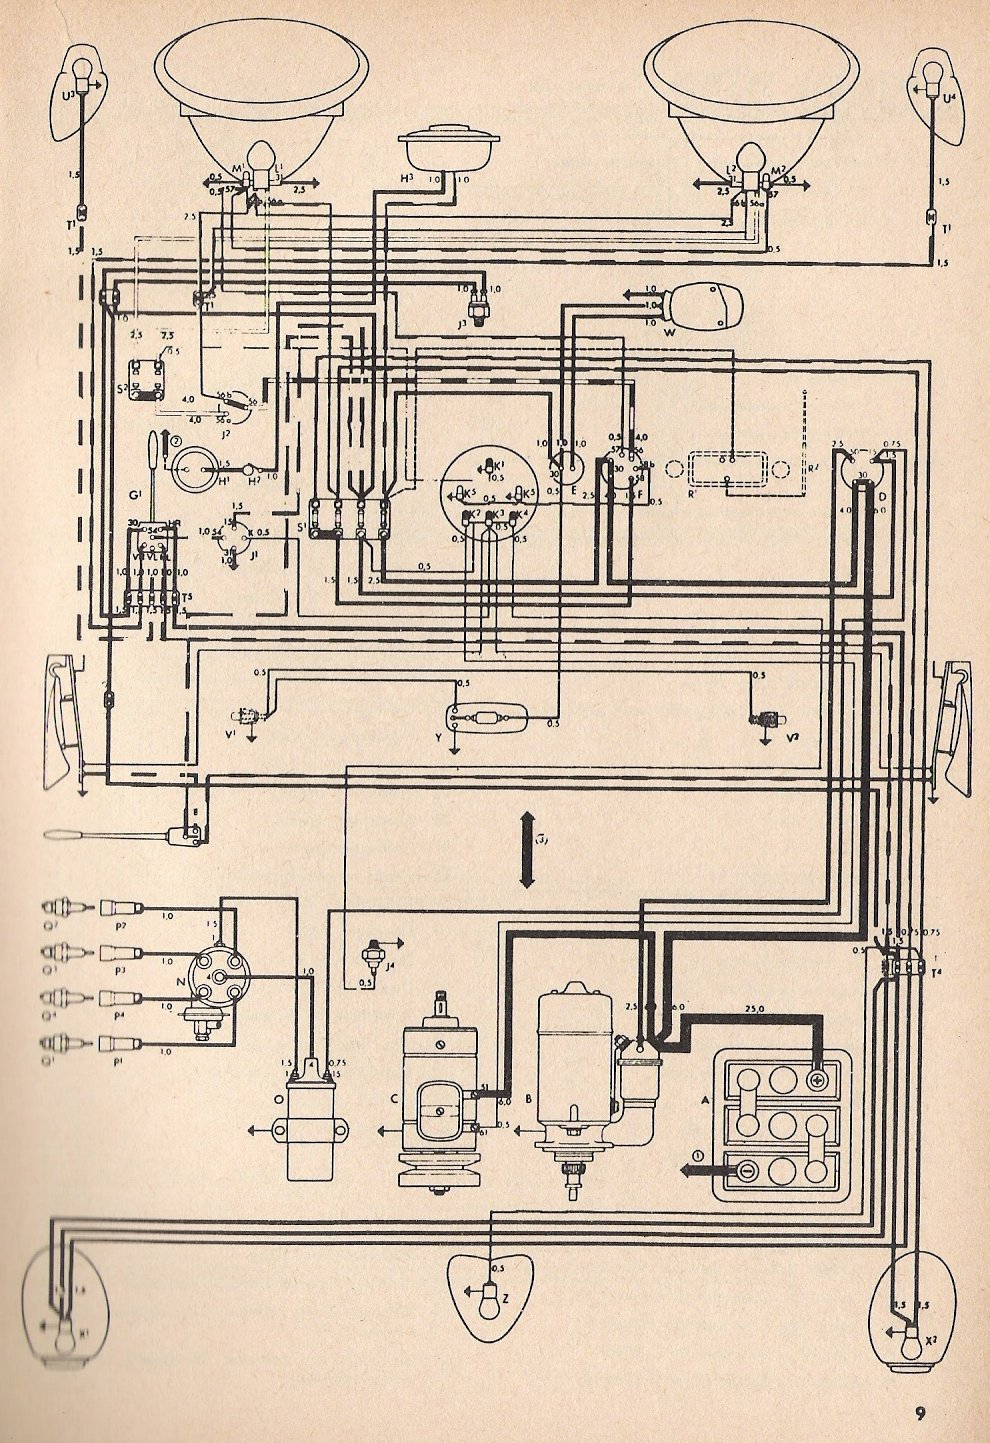 Electrical Wiring Diagram 1971 Karmann Ghia on wiringghia